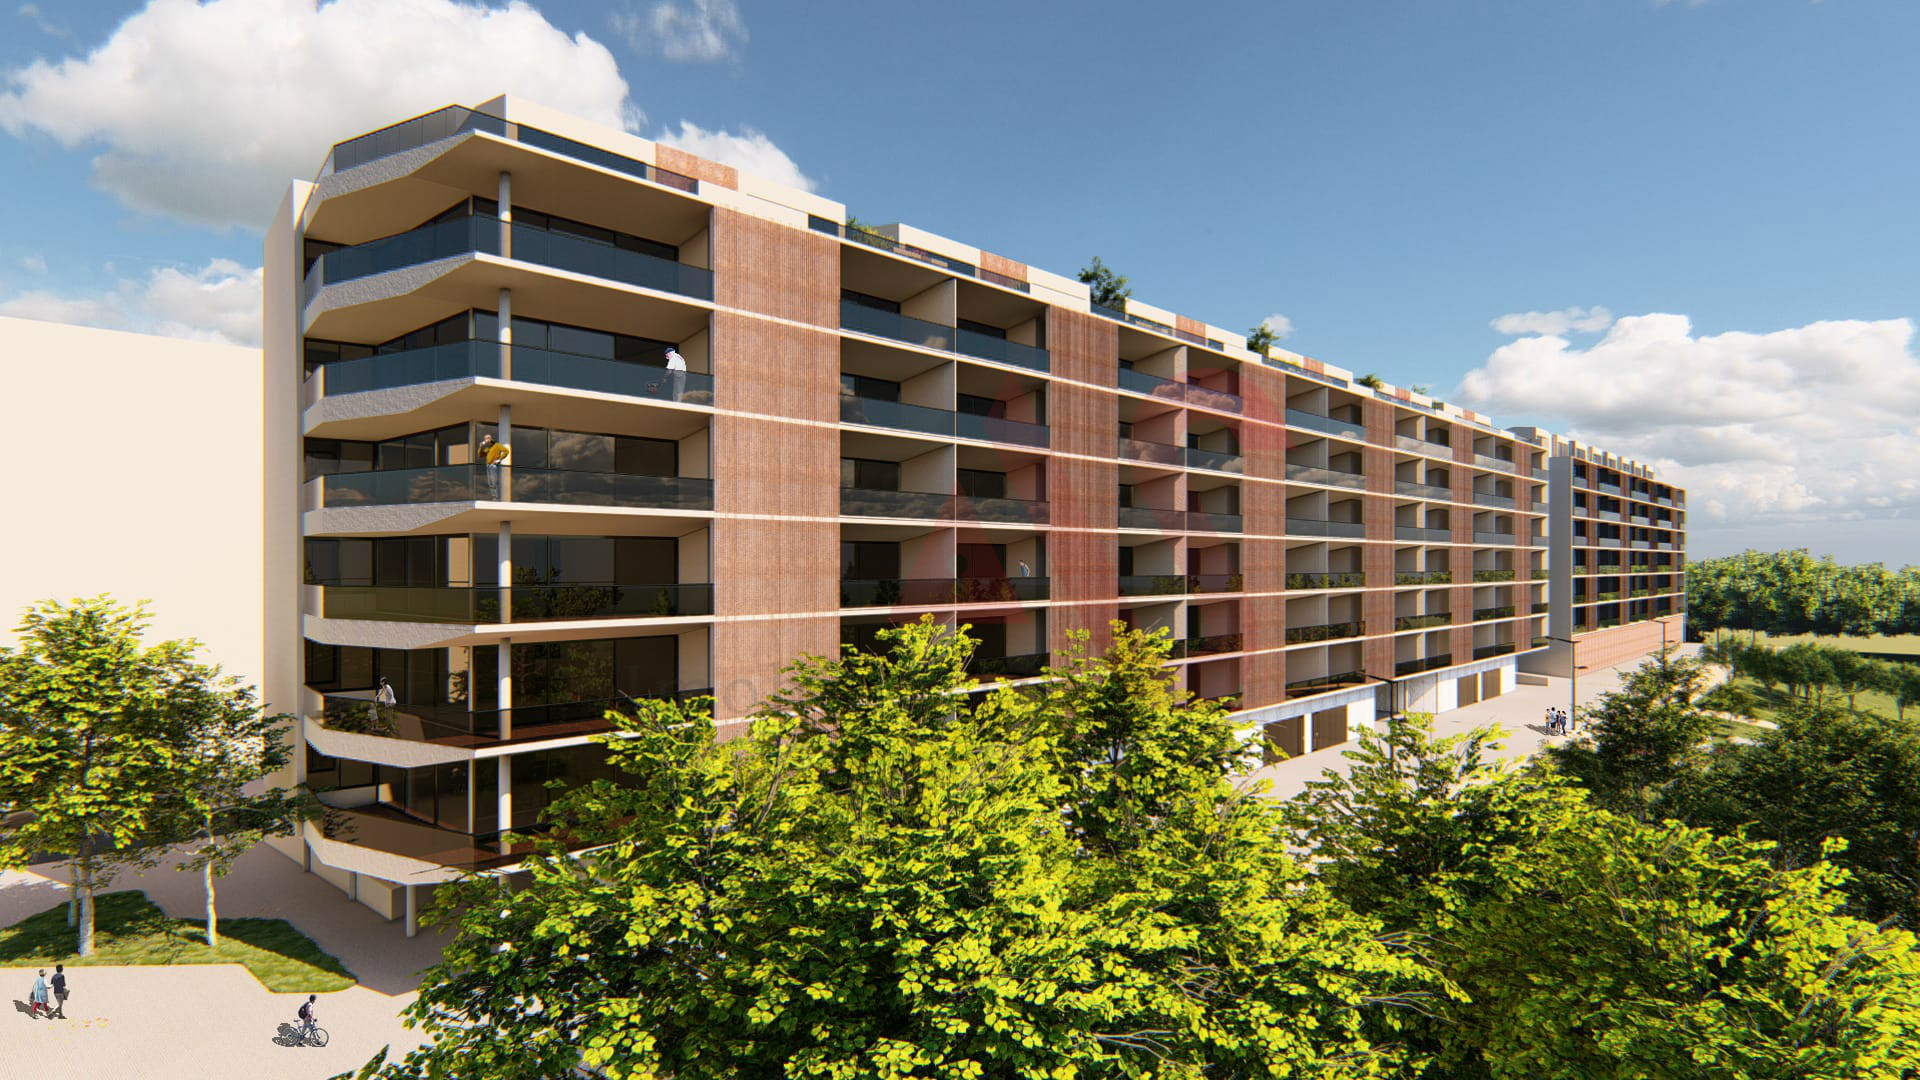 3+1 duplex bedroom apartment, in the Rio Ave Terrasse II development, on the banks of the Rio Ave